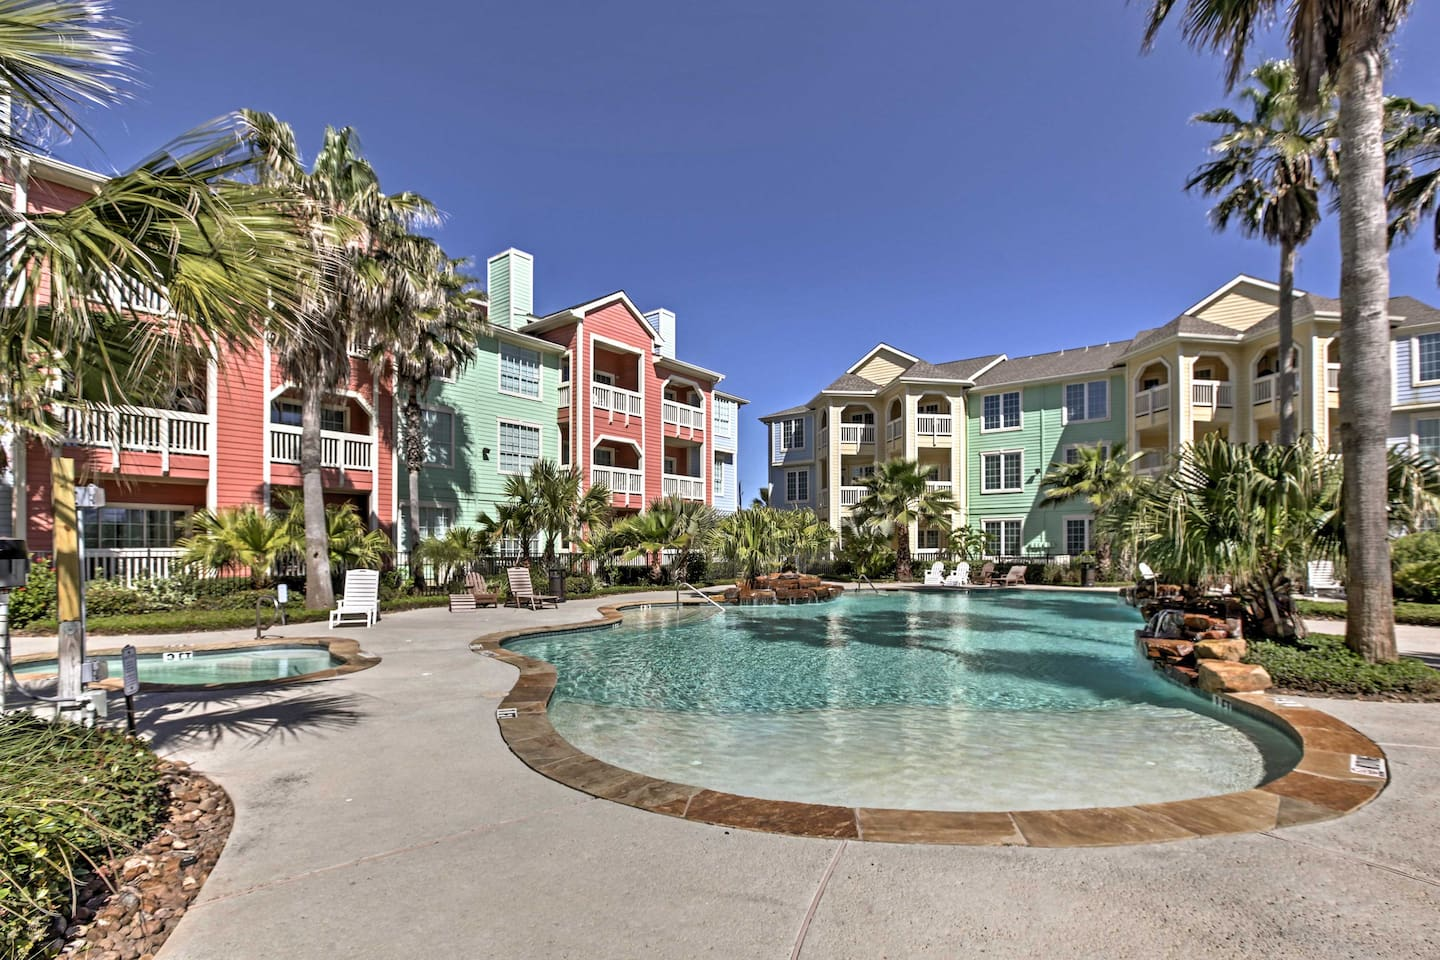 Enjoy access to great community amenities and easy access to the sandy shores while staying at 'Condo by the Sea,' a 3-bedroom vacation rental condo in Galveston!